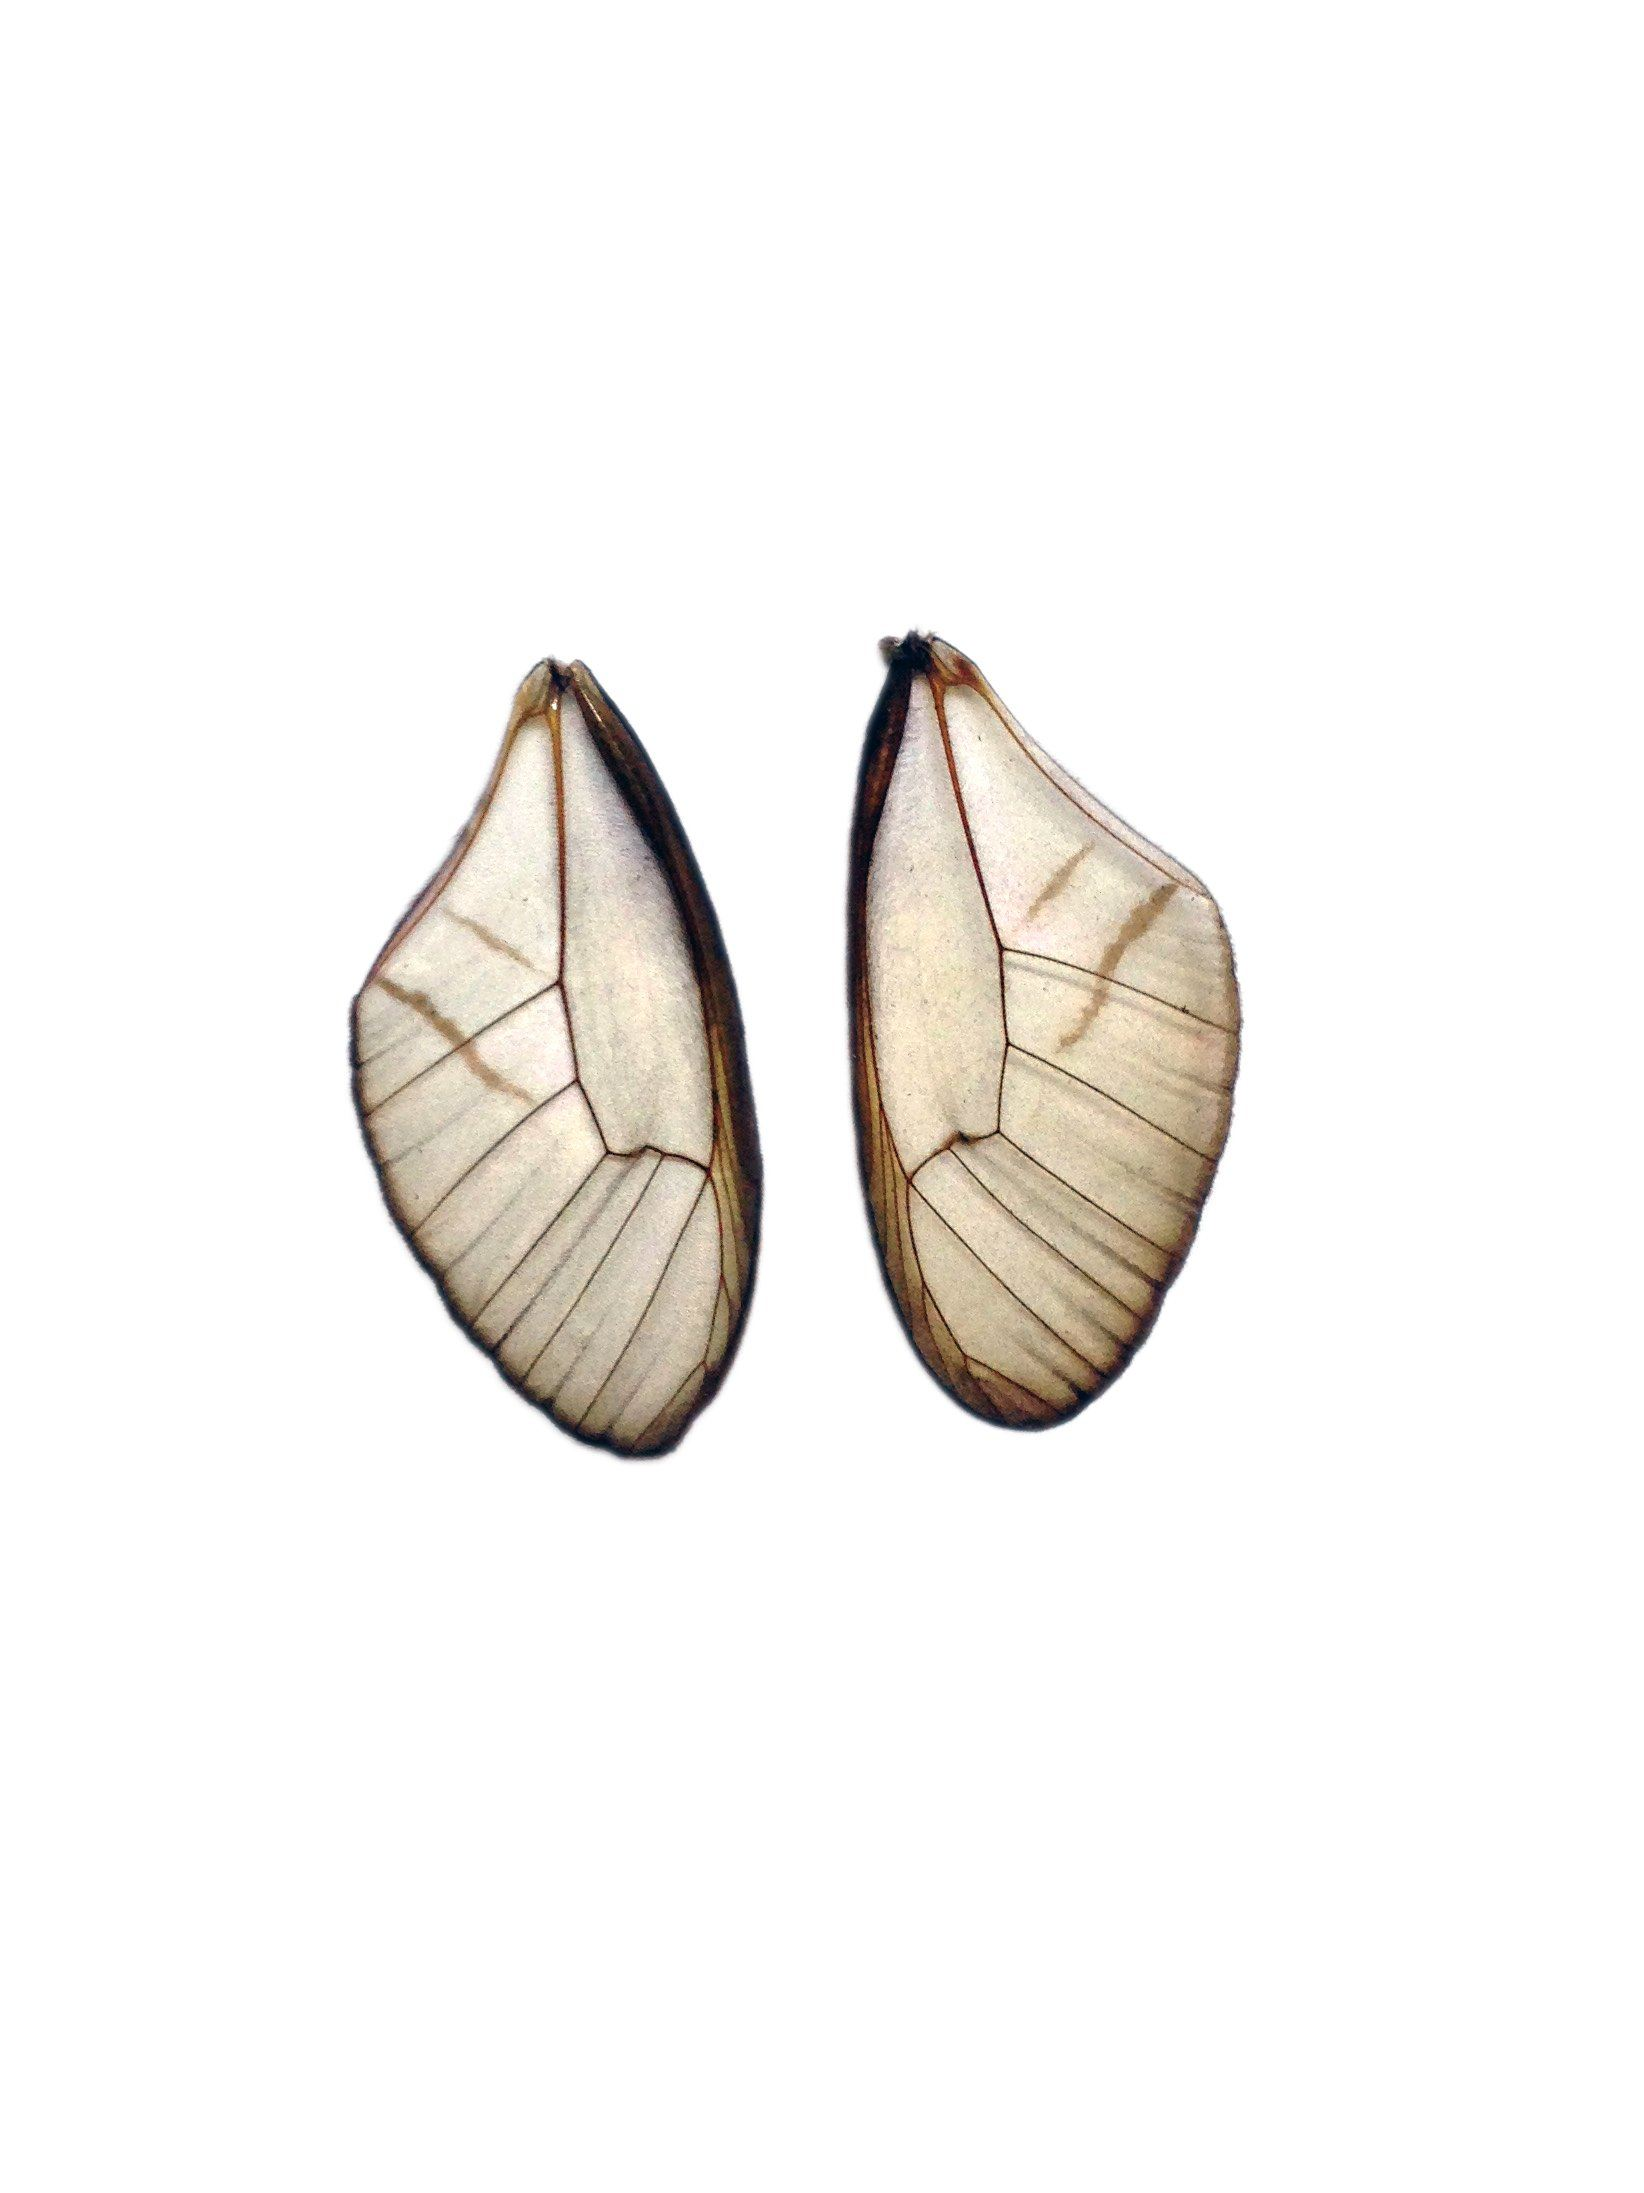 Cithaerias merolina butterfly wing pairs